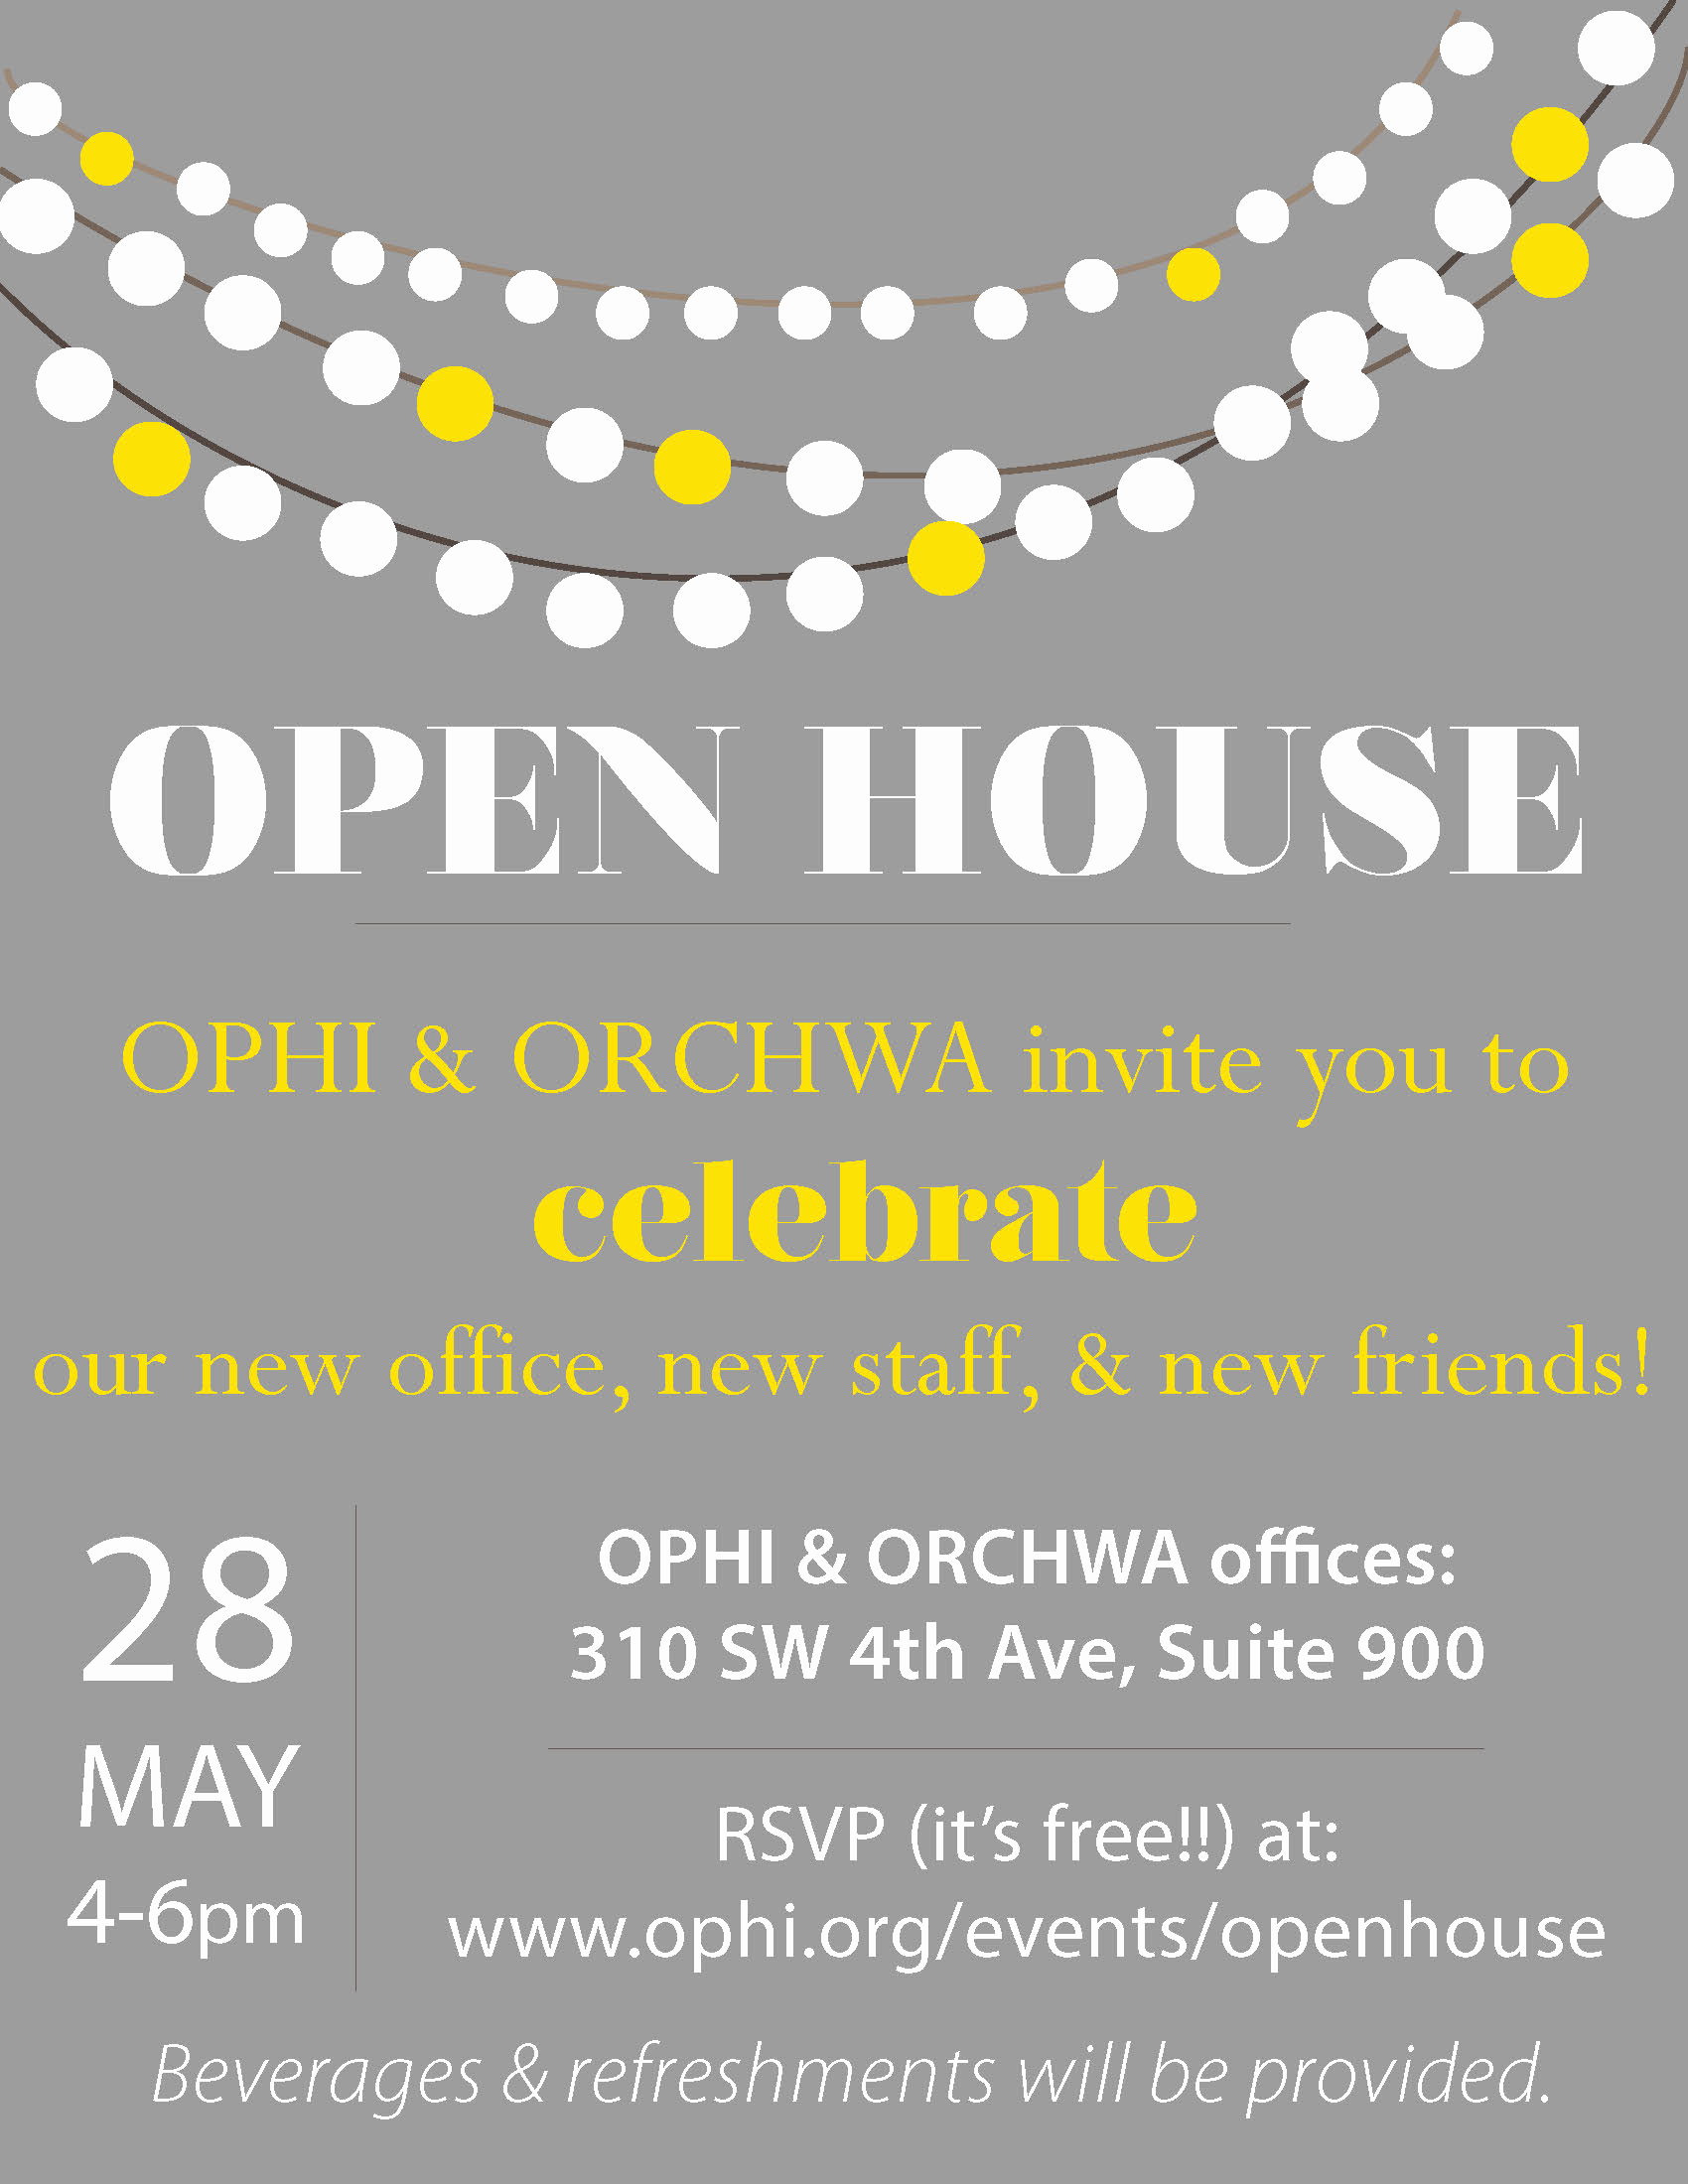 Open House Invitation Examples Inspirational Ophi Open House – Ophi